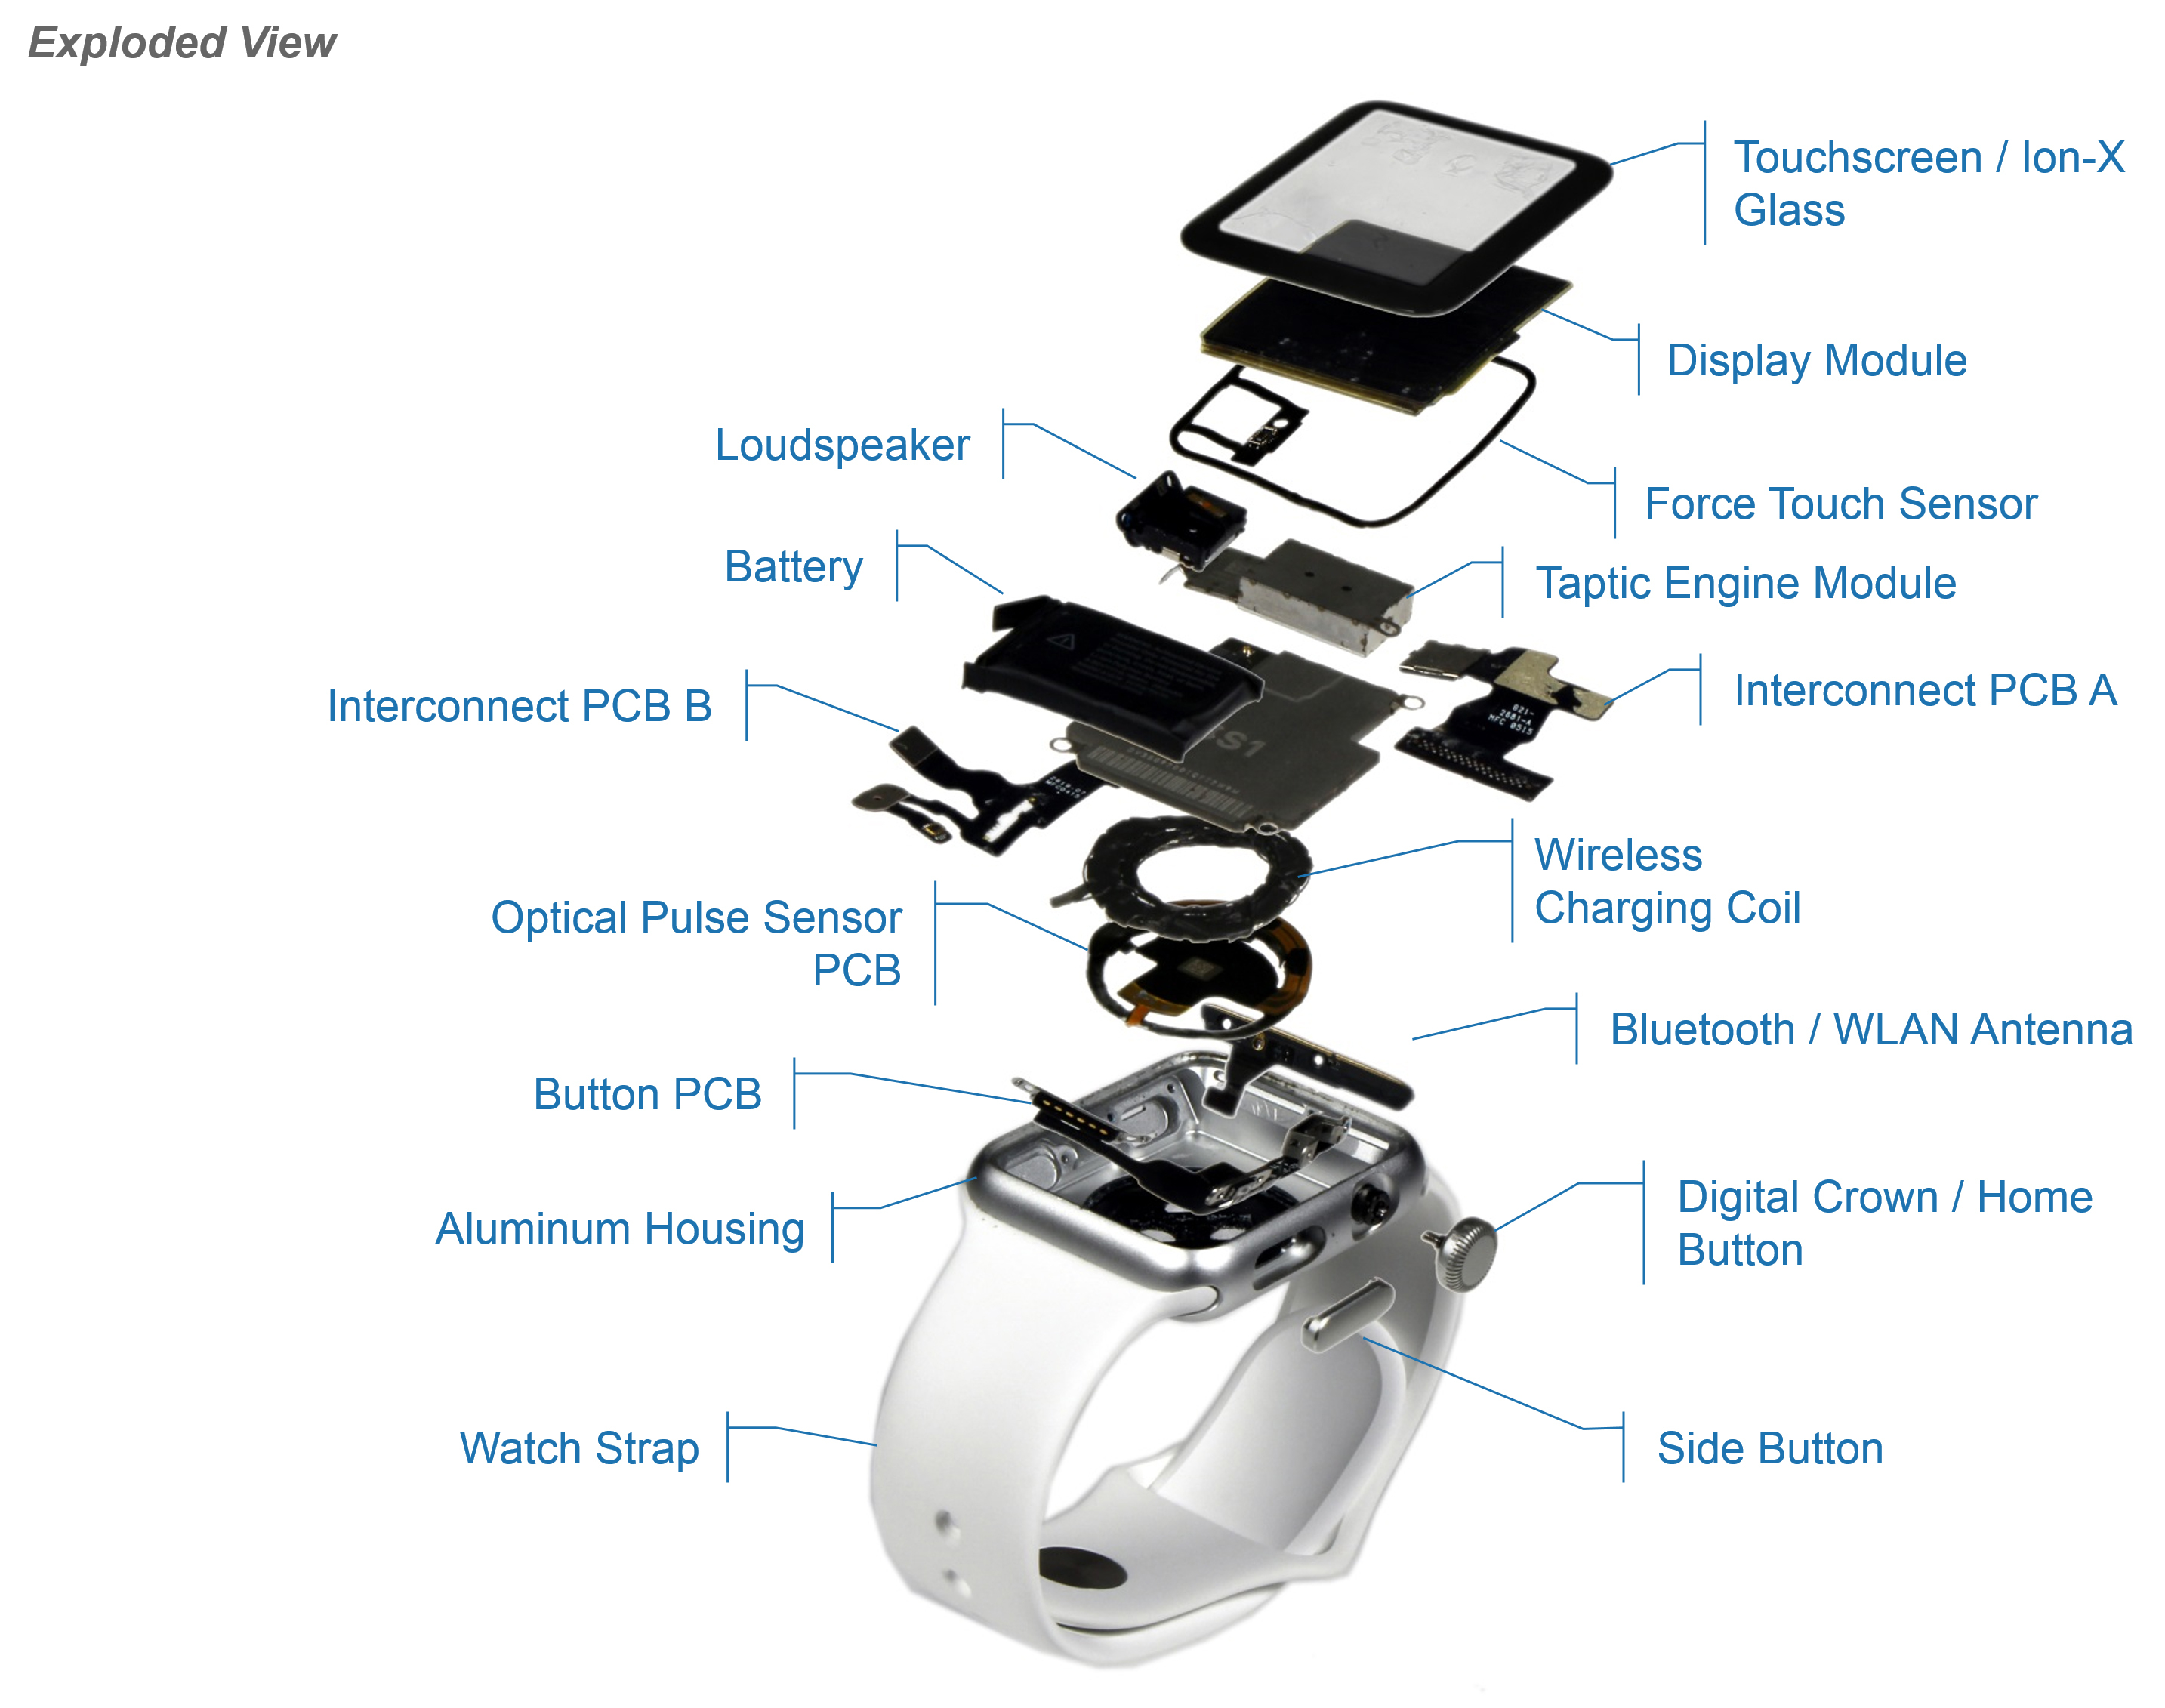 2227992_Apple_Watch_Exploded_View_Pic_042915